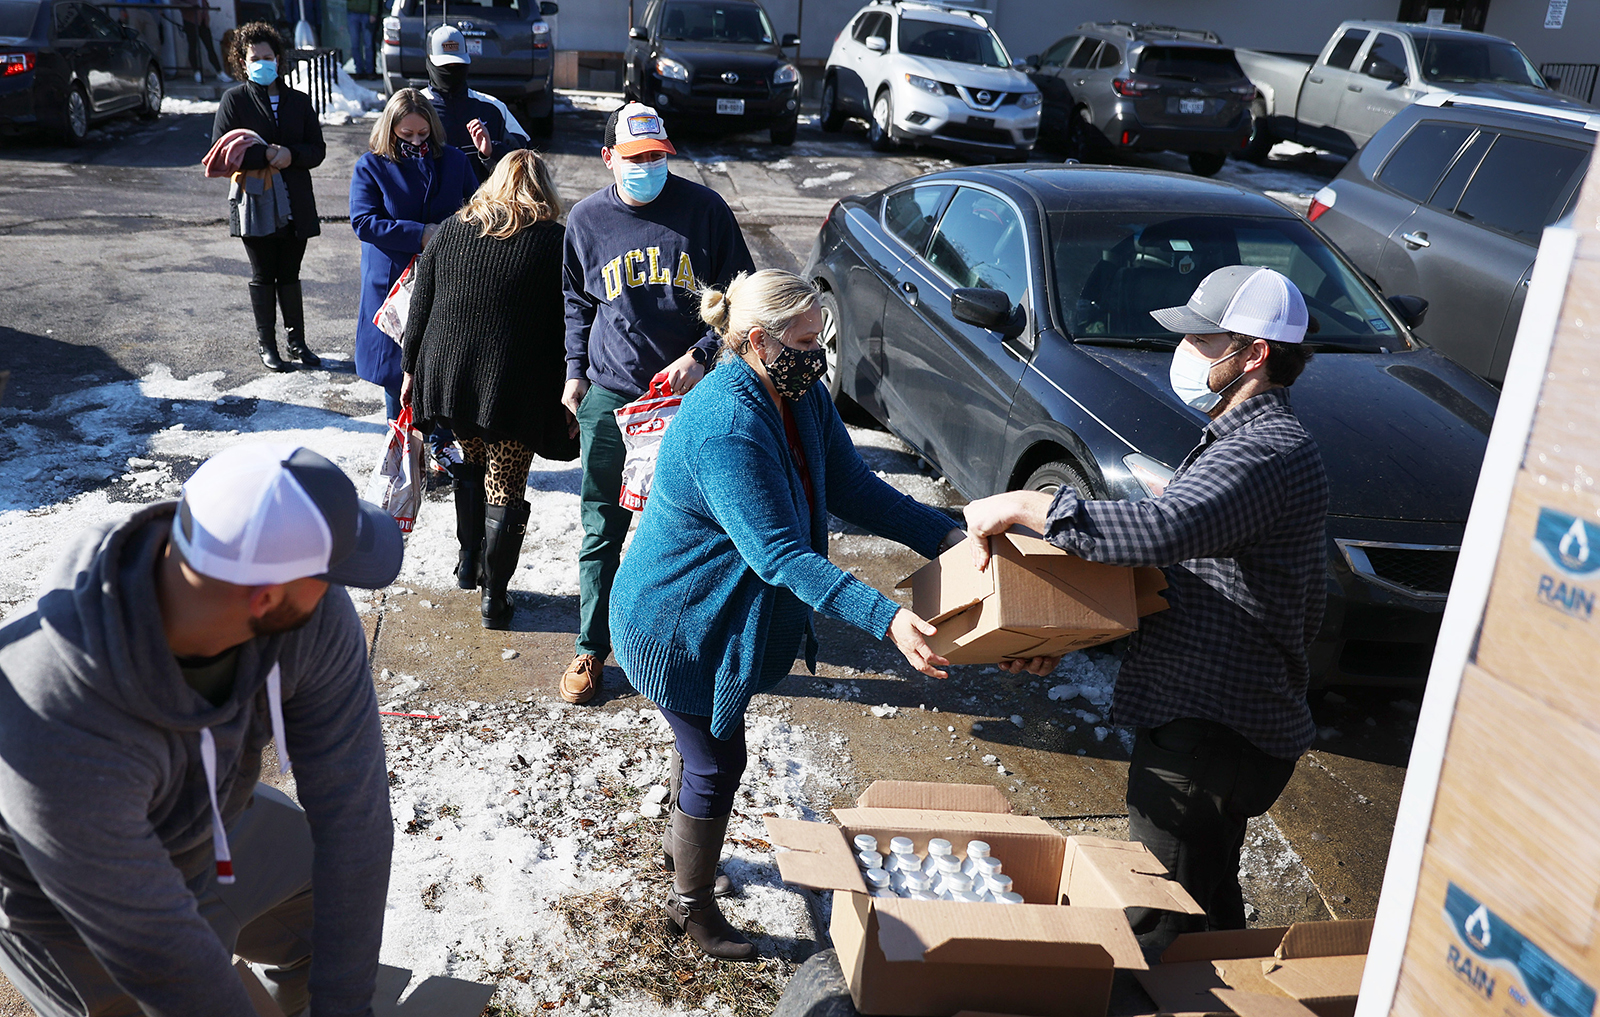 Mark Majkrzak gives out bottles of Rain Pure Mountain Spring Water to people in need on February 19, in Austin, Texas.